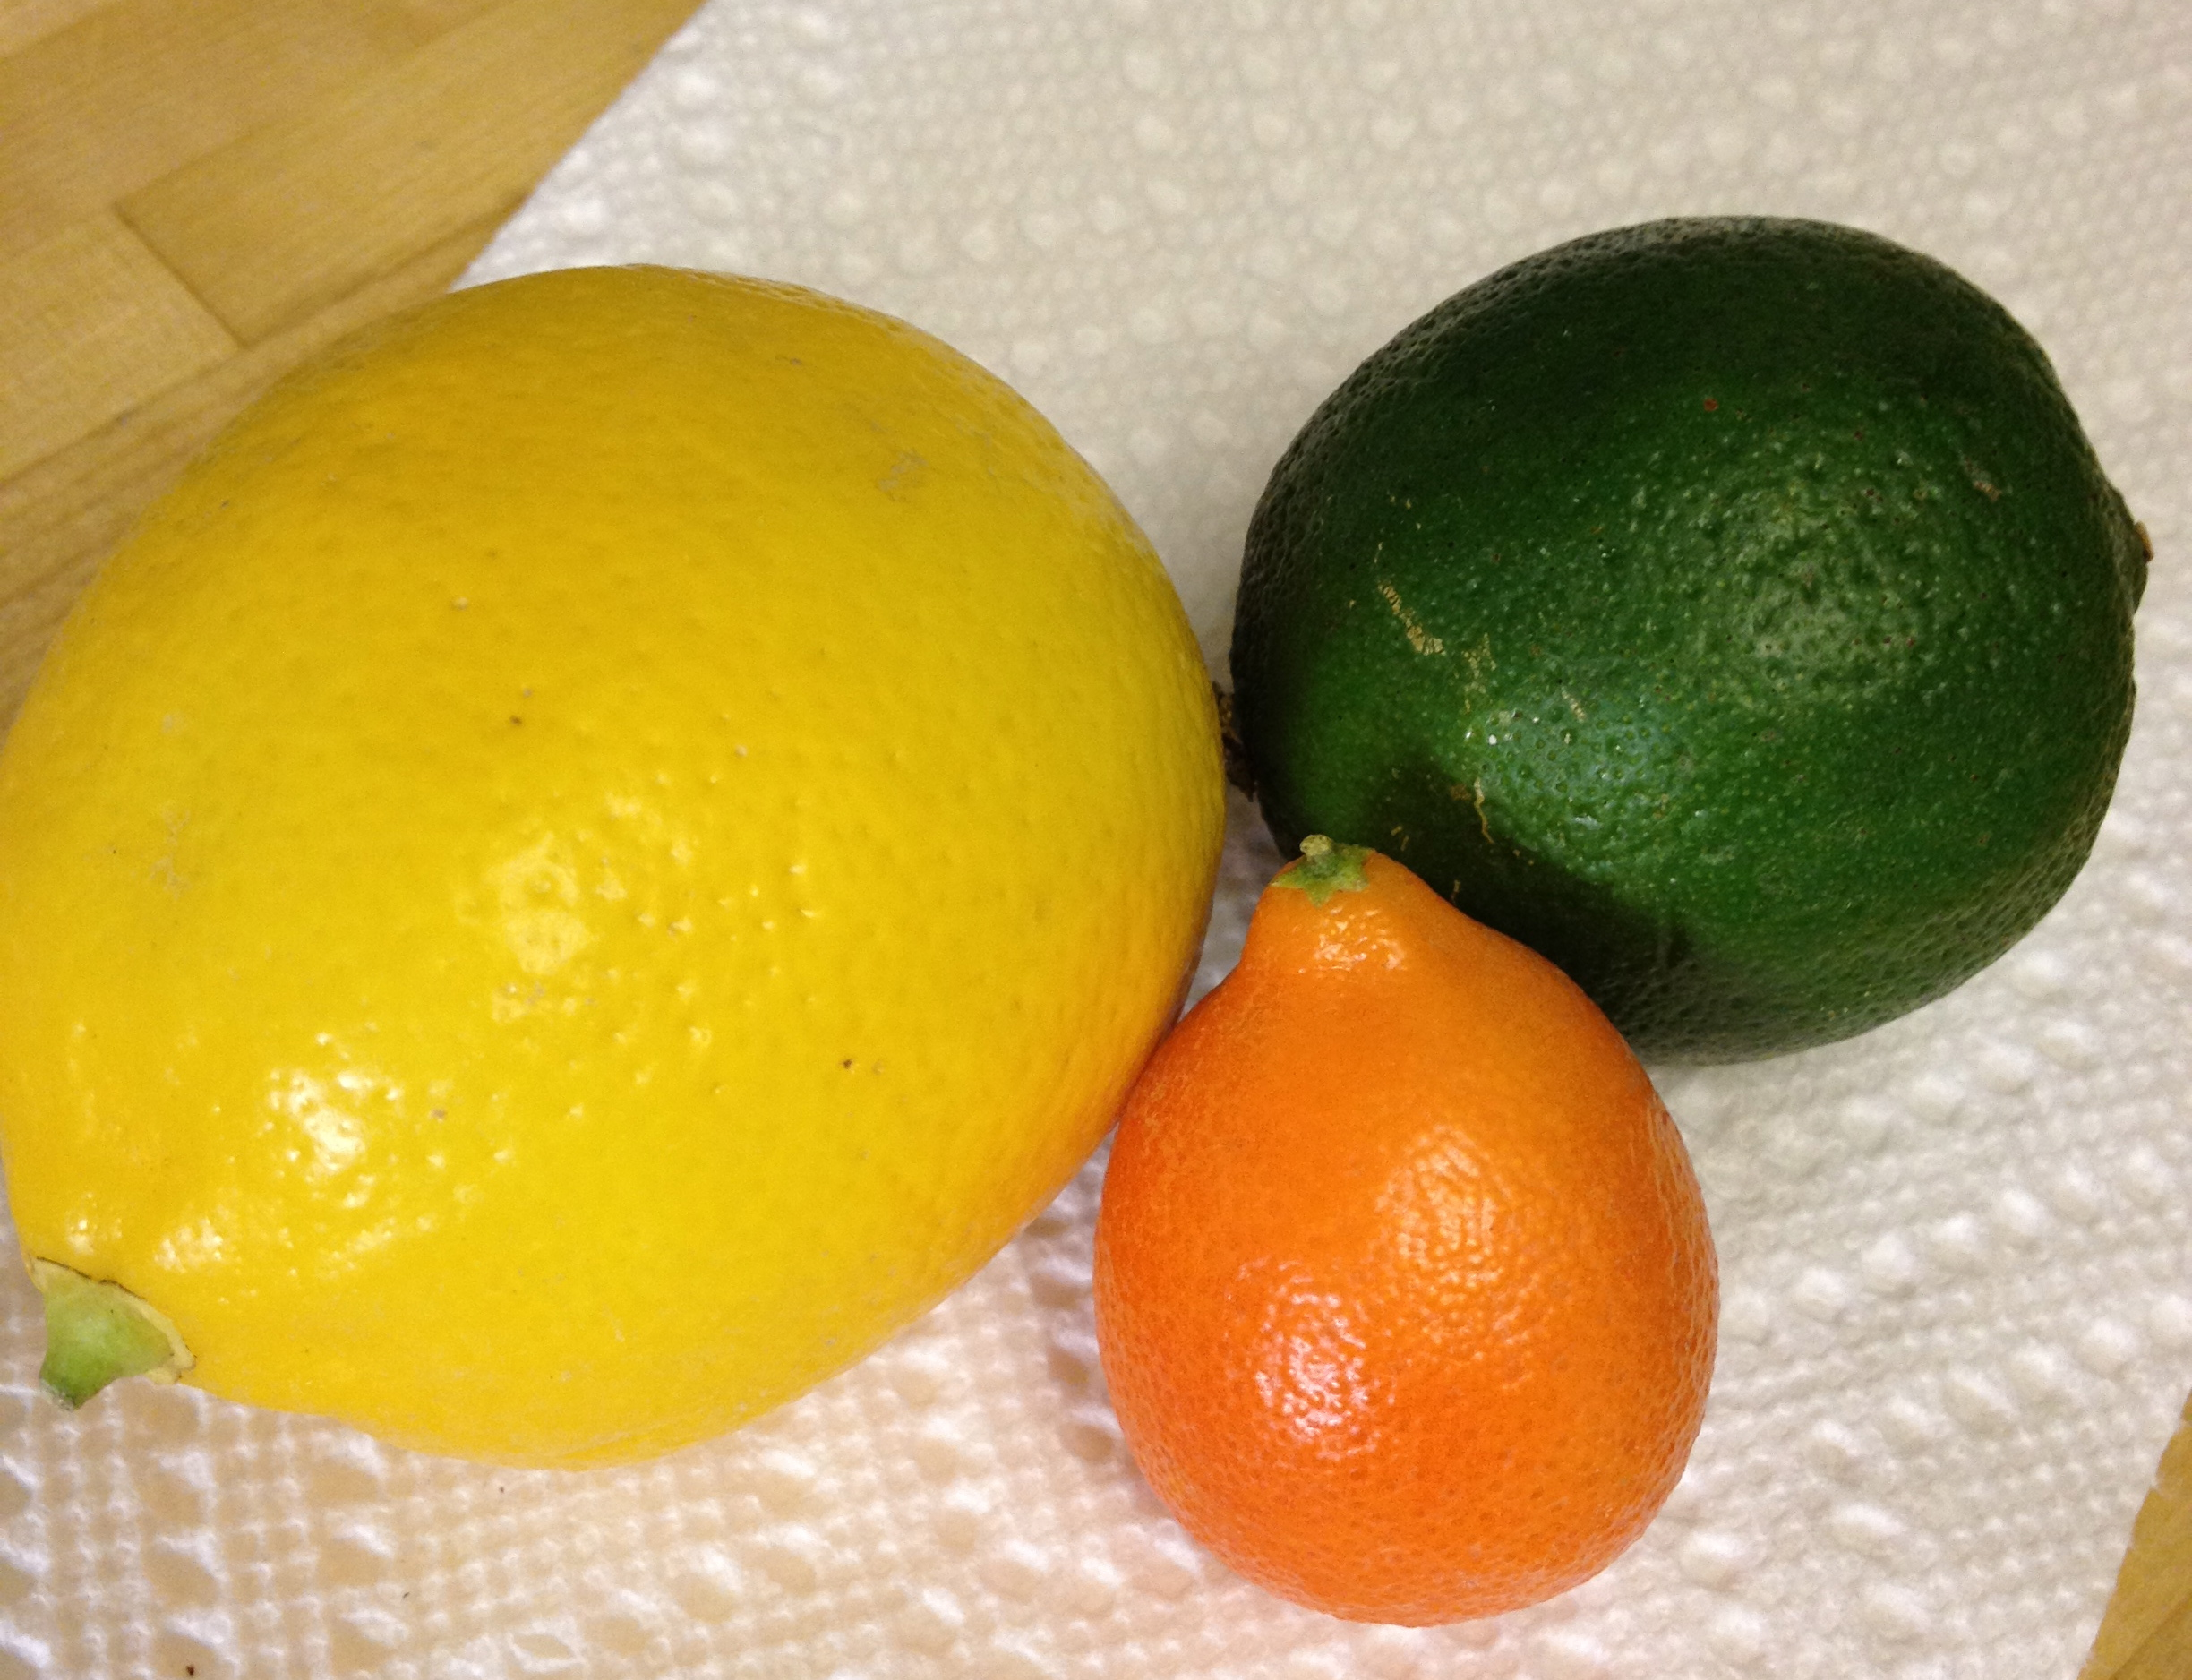 Mandarinquat! (next to a Meyer lemon and a lime)